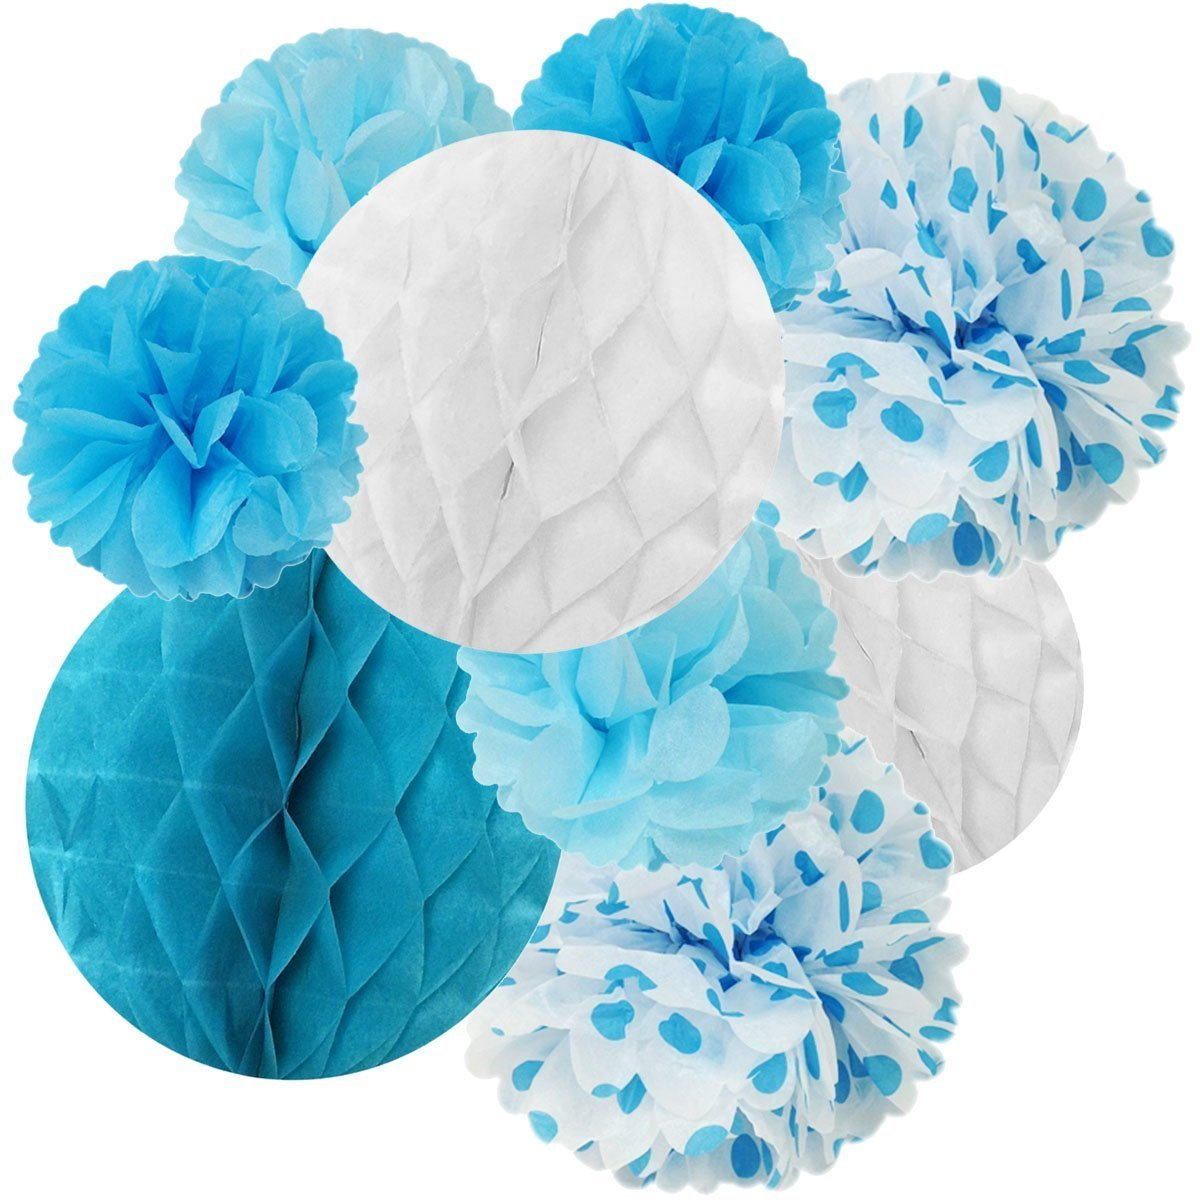 Wrapables Set Of 21 Tissue Honeycomb Ball And Pom Pom Party Decorations Blue Light Blue Aqua White